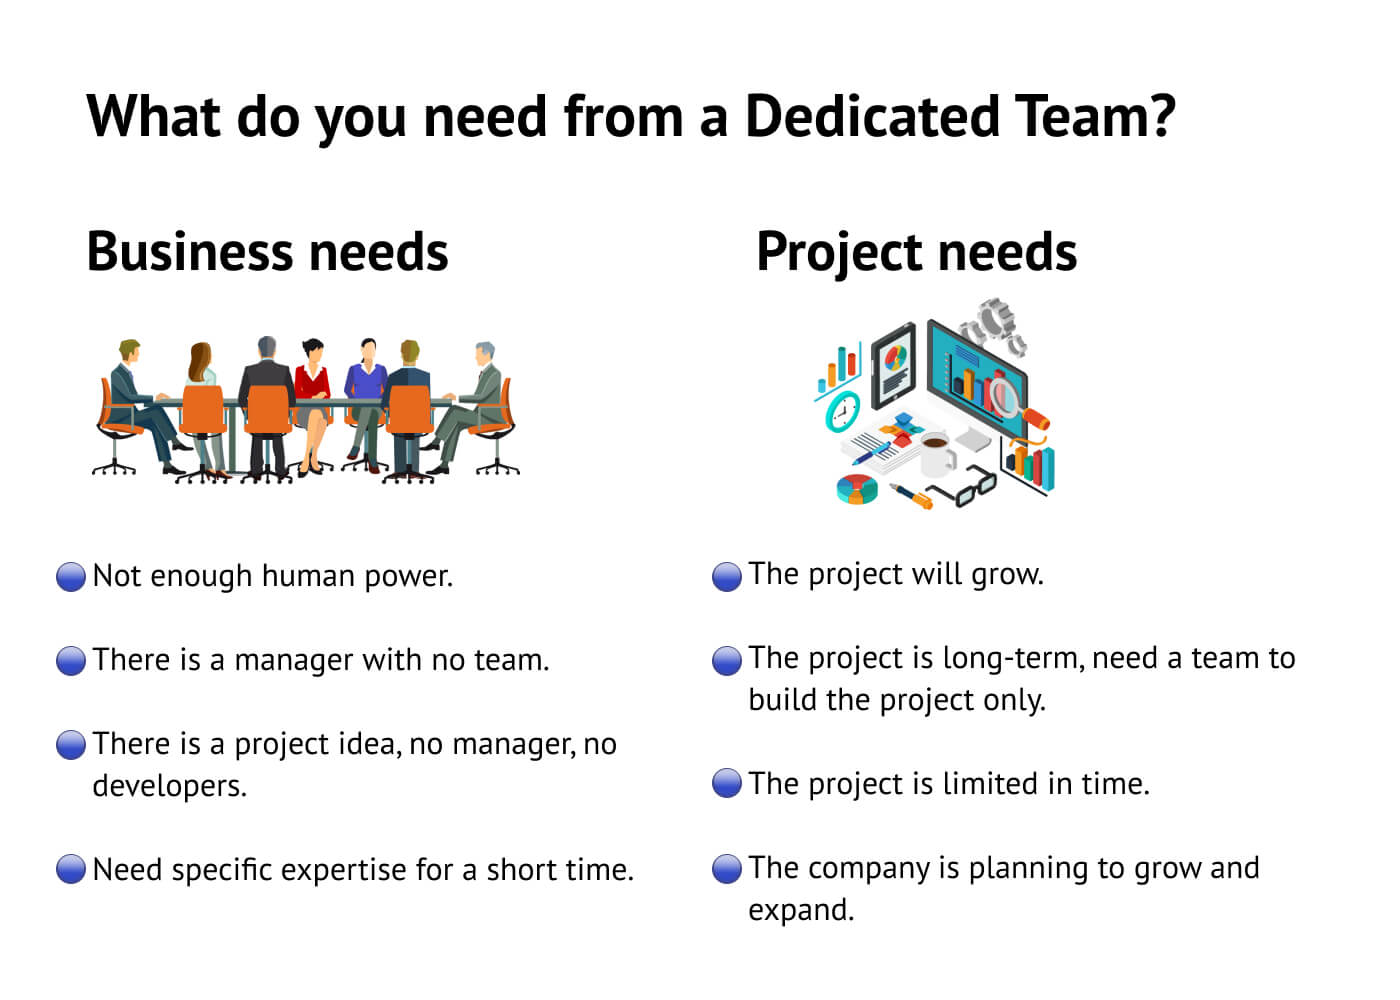 What do you need from a Dedicated Team